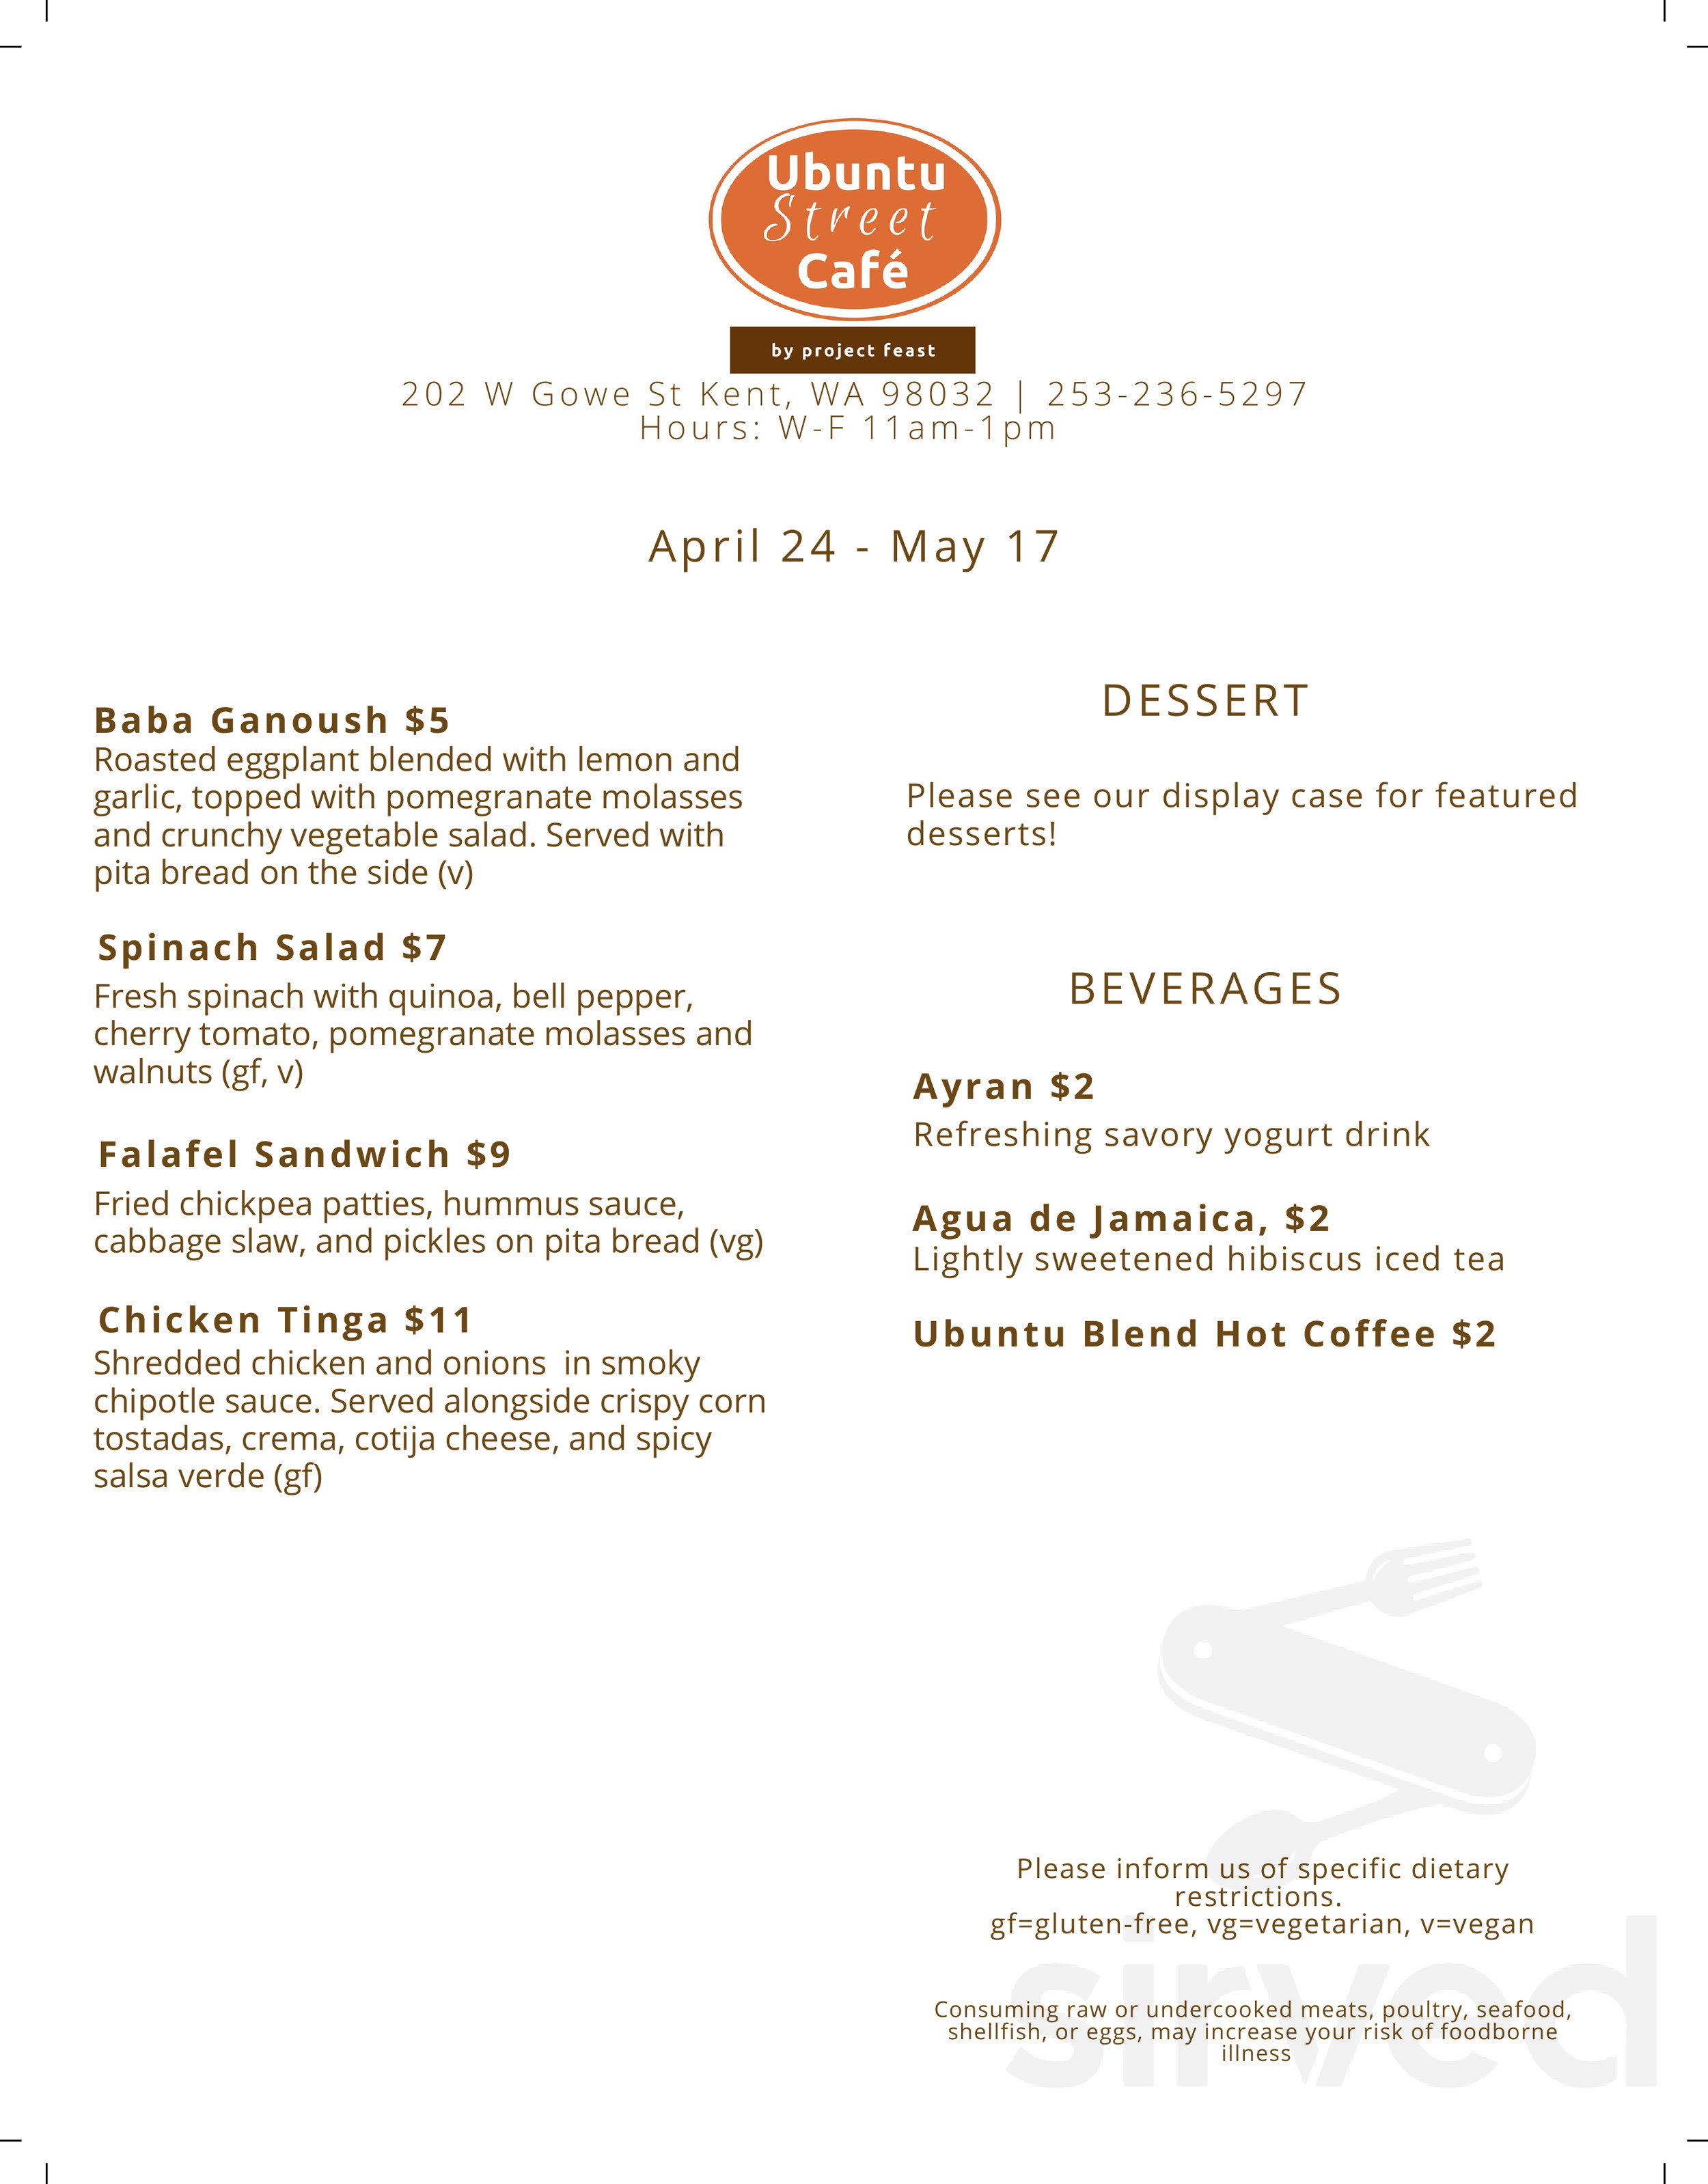 Menu for Ubuntu Street Cafe & Catering by Project Feast in